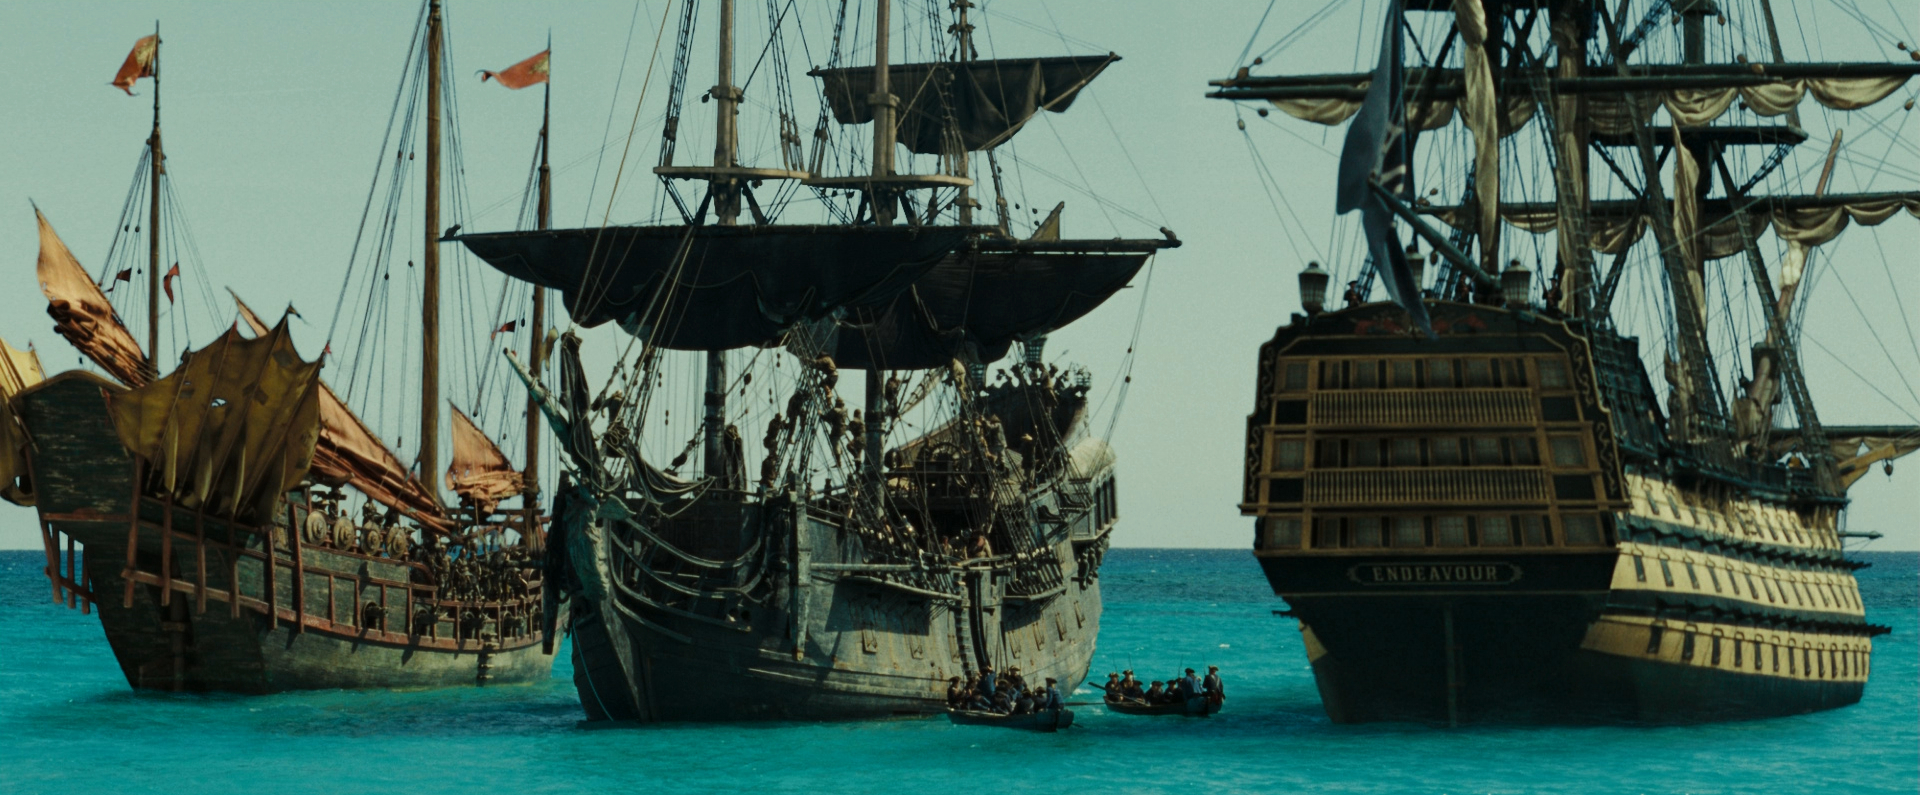 CategoryShips  PotC Wiki  FANDOM powered by Wikia